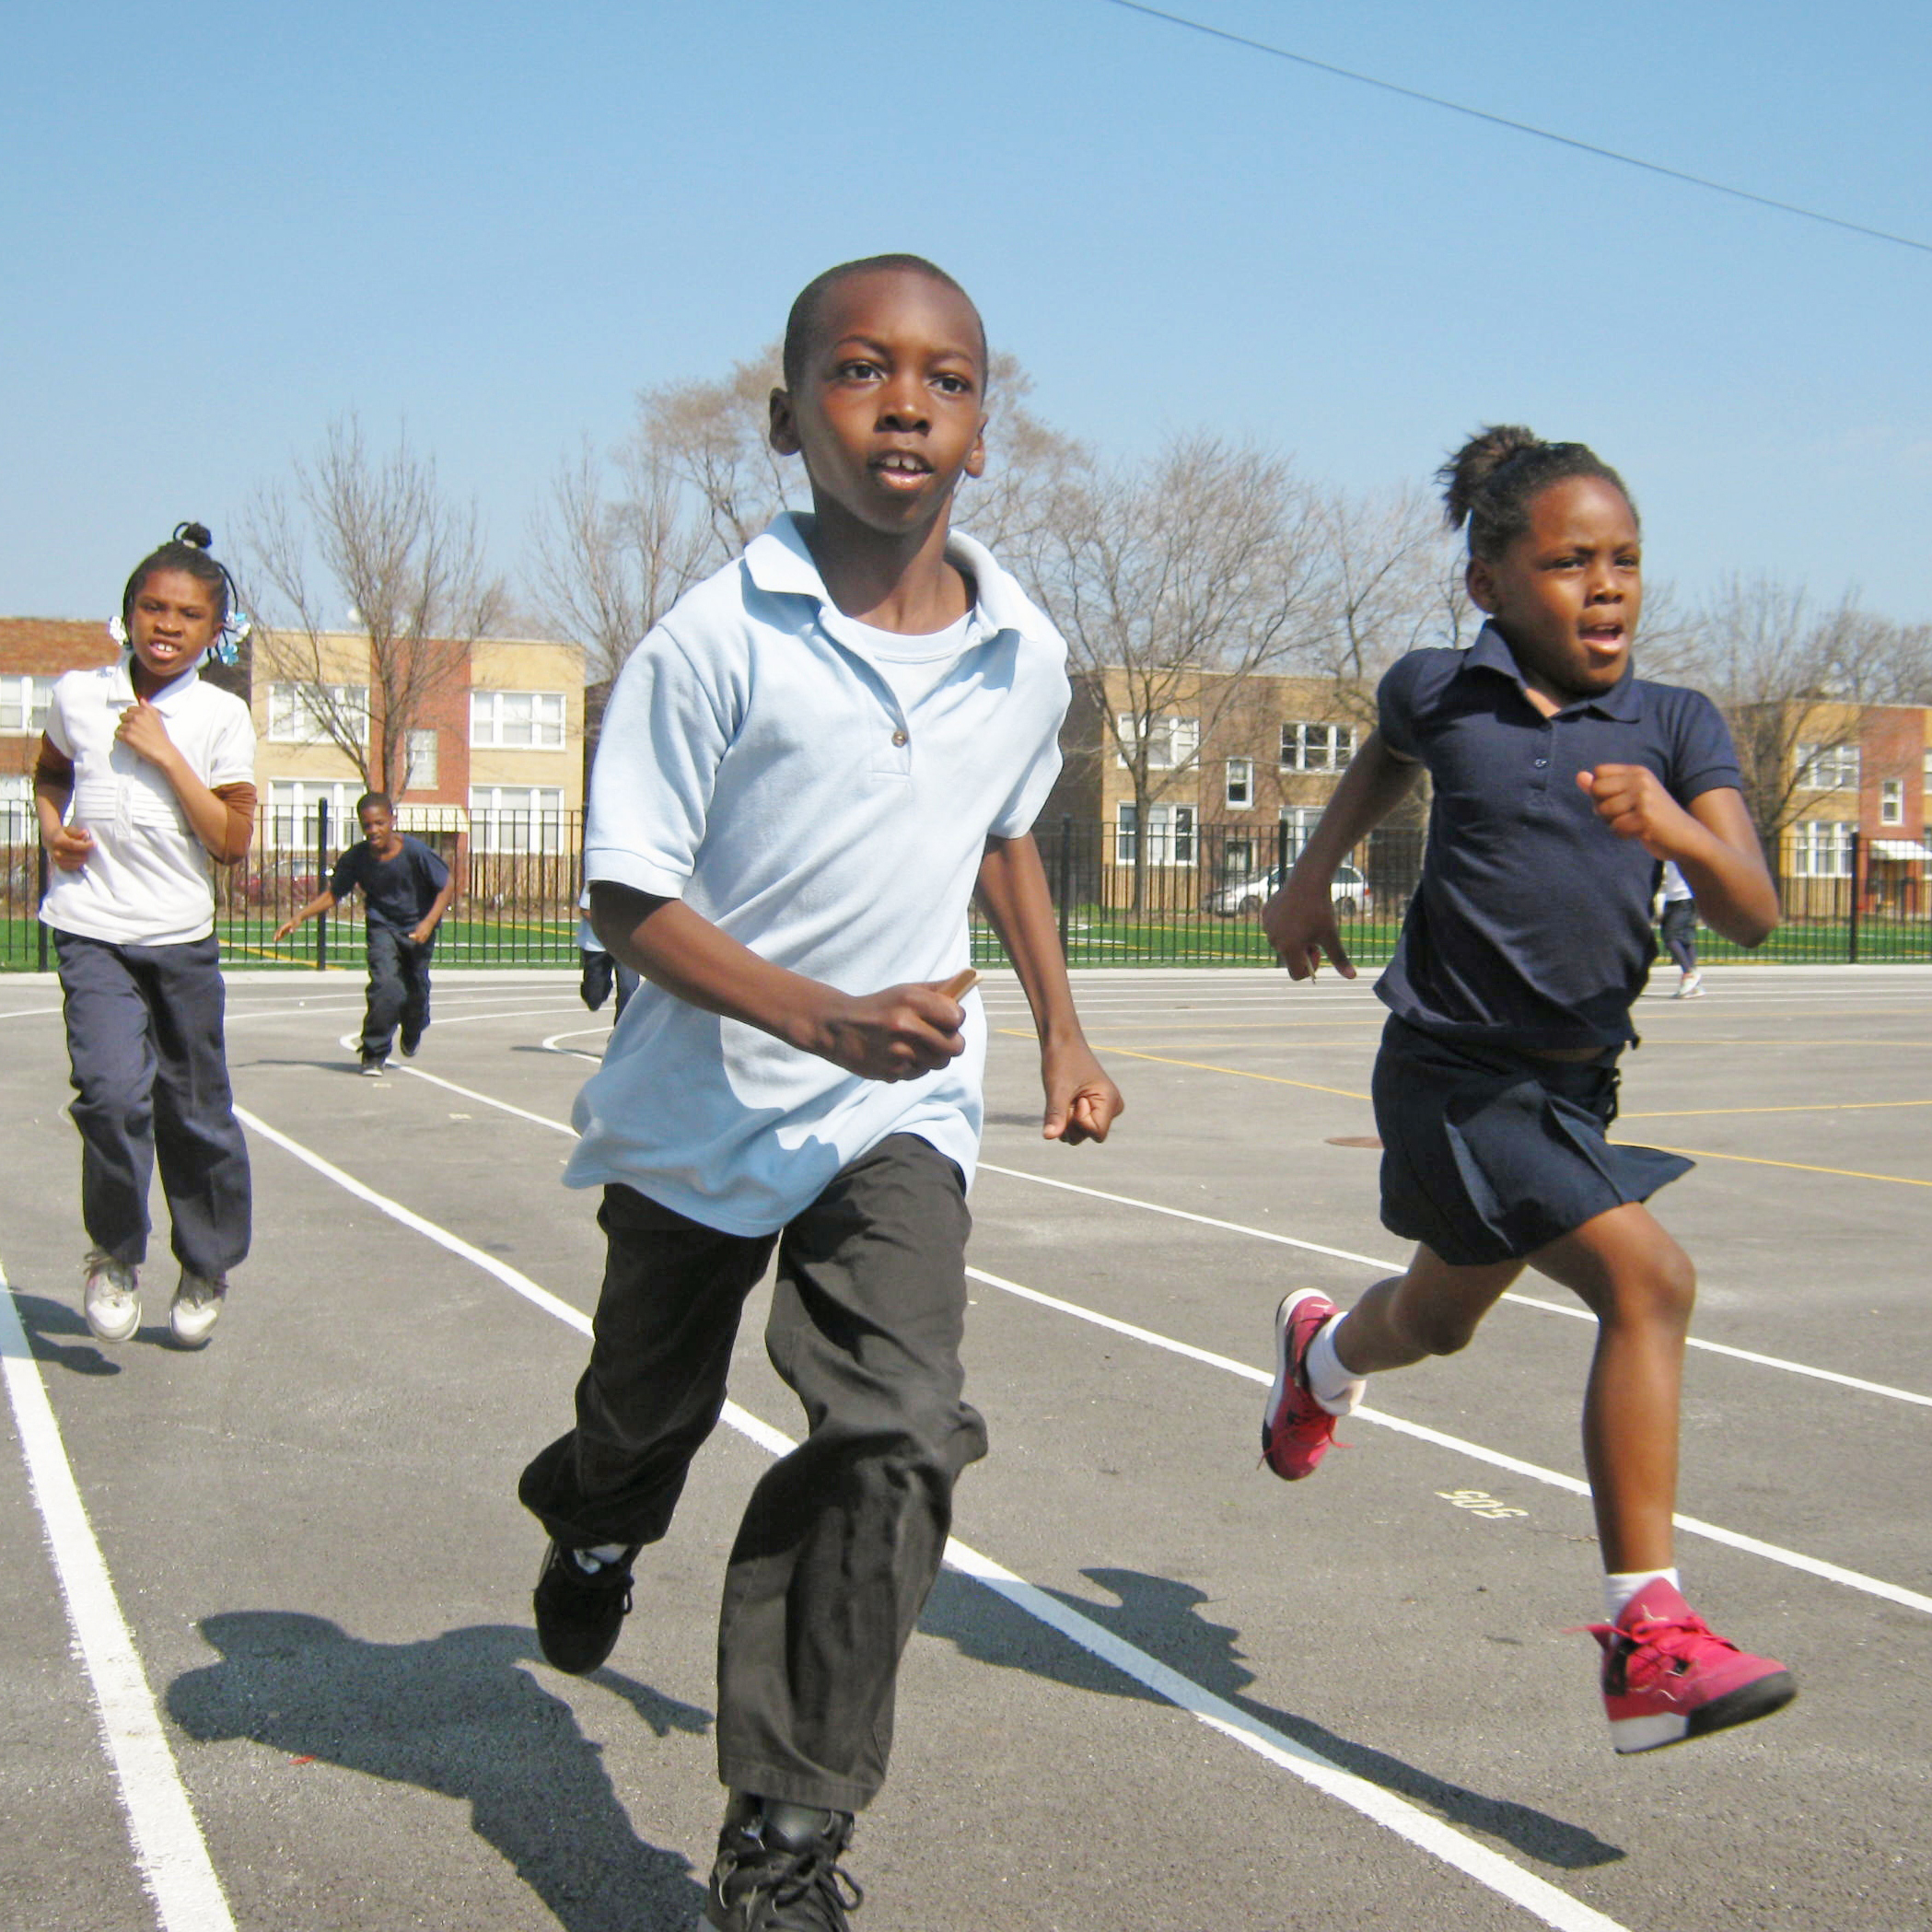 Students doing Chicago Run during the school day at May Elementary.JPG